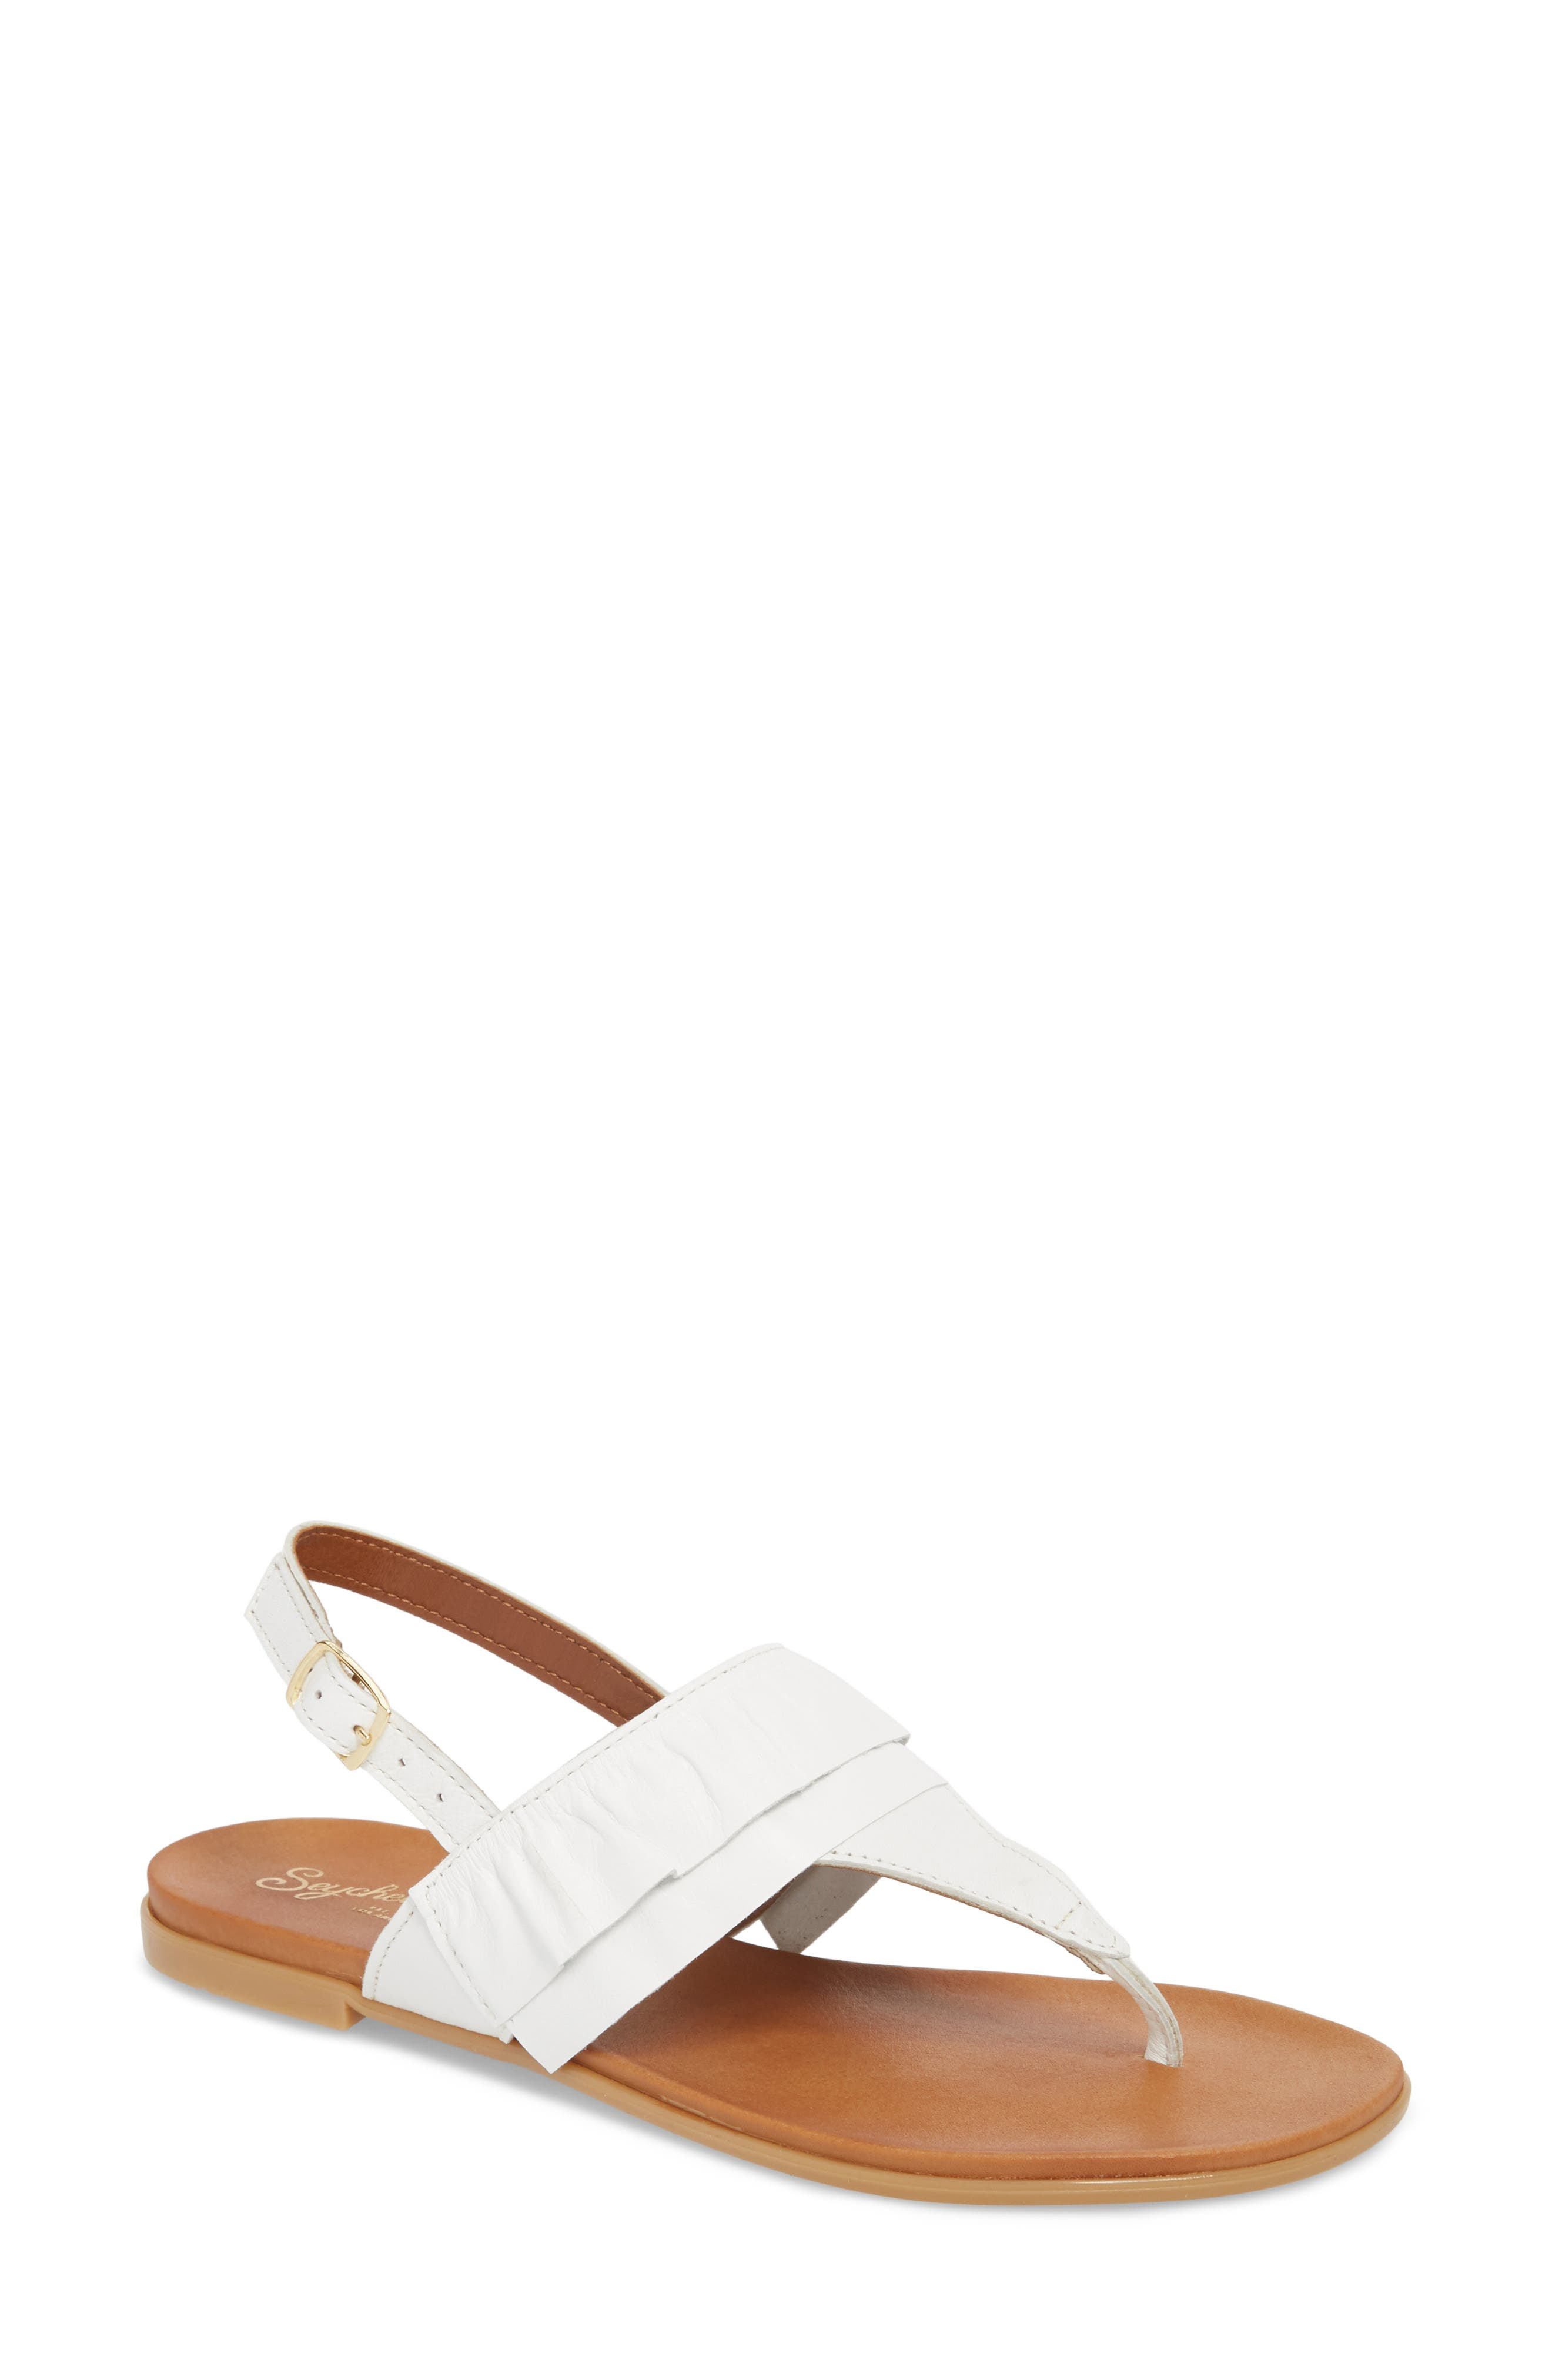 Seclusion Ruffle Sandal,                         Main,                         color, White Leather